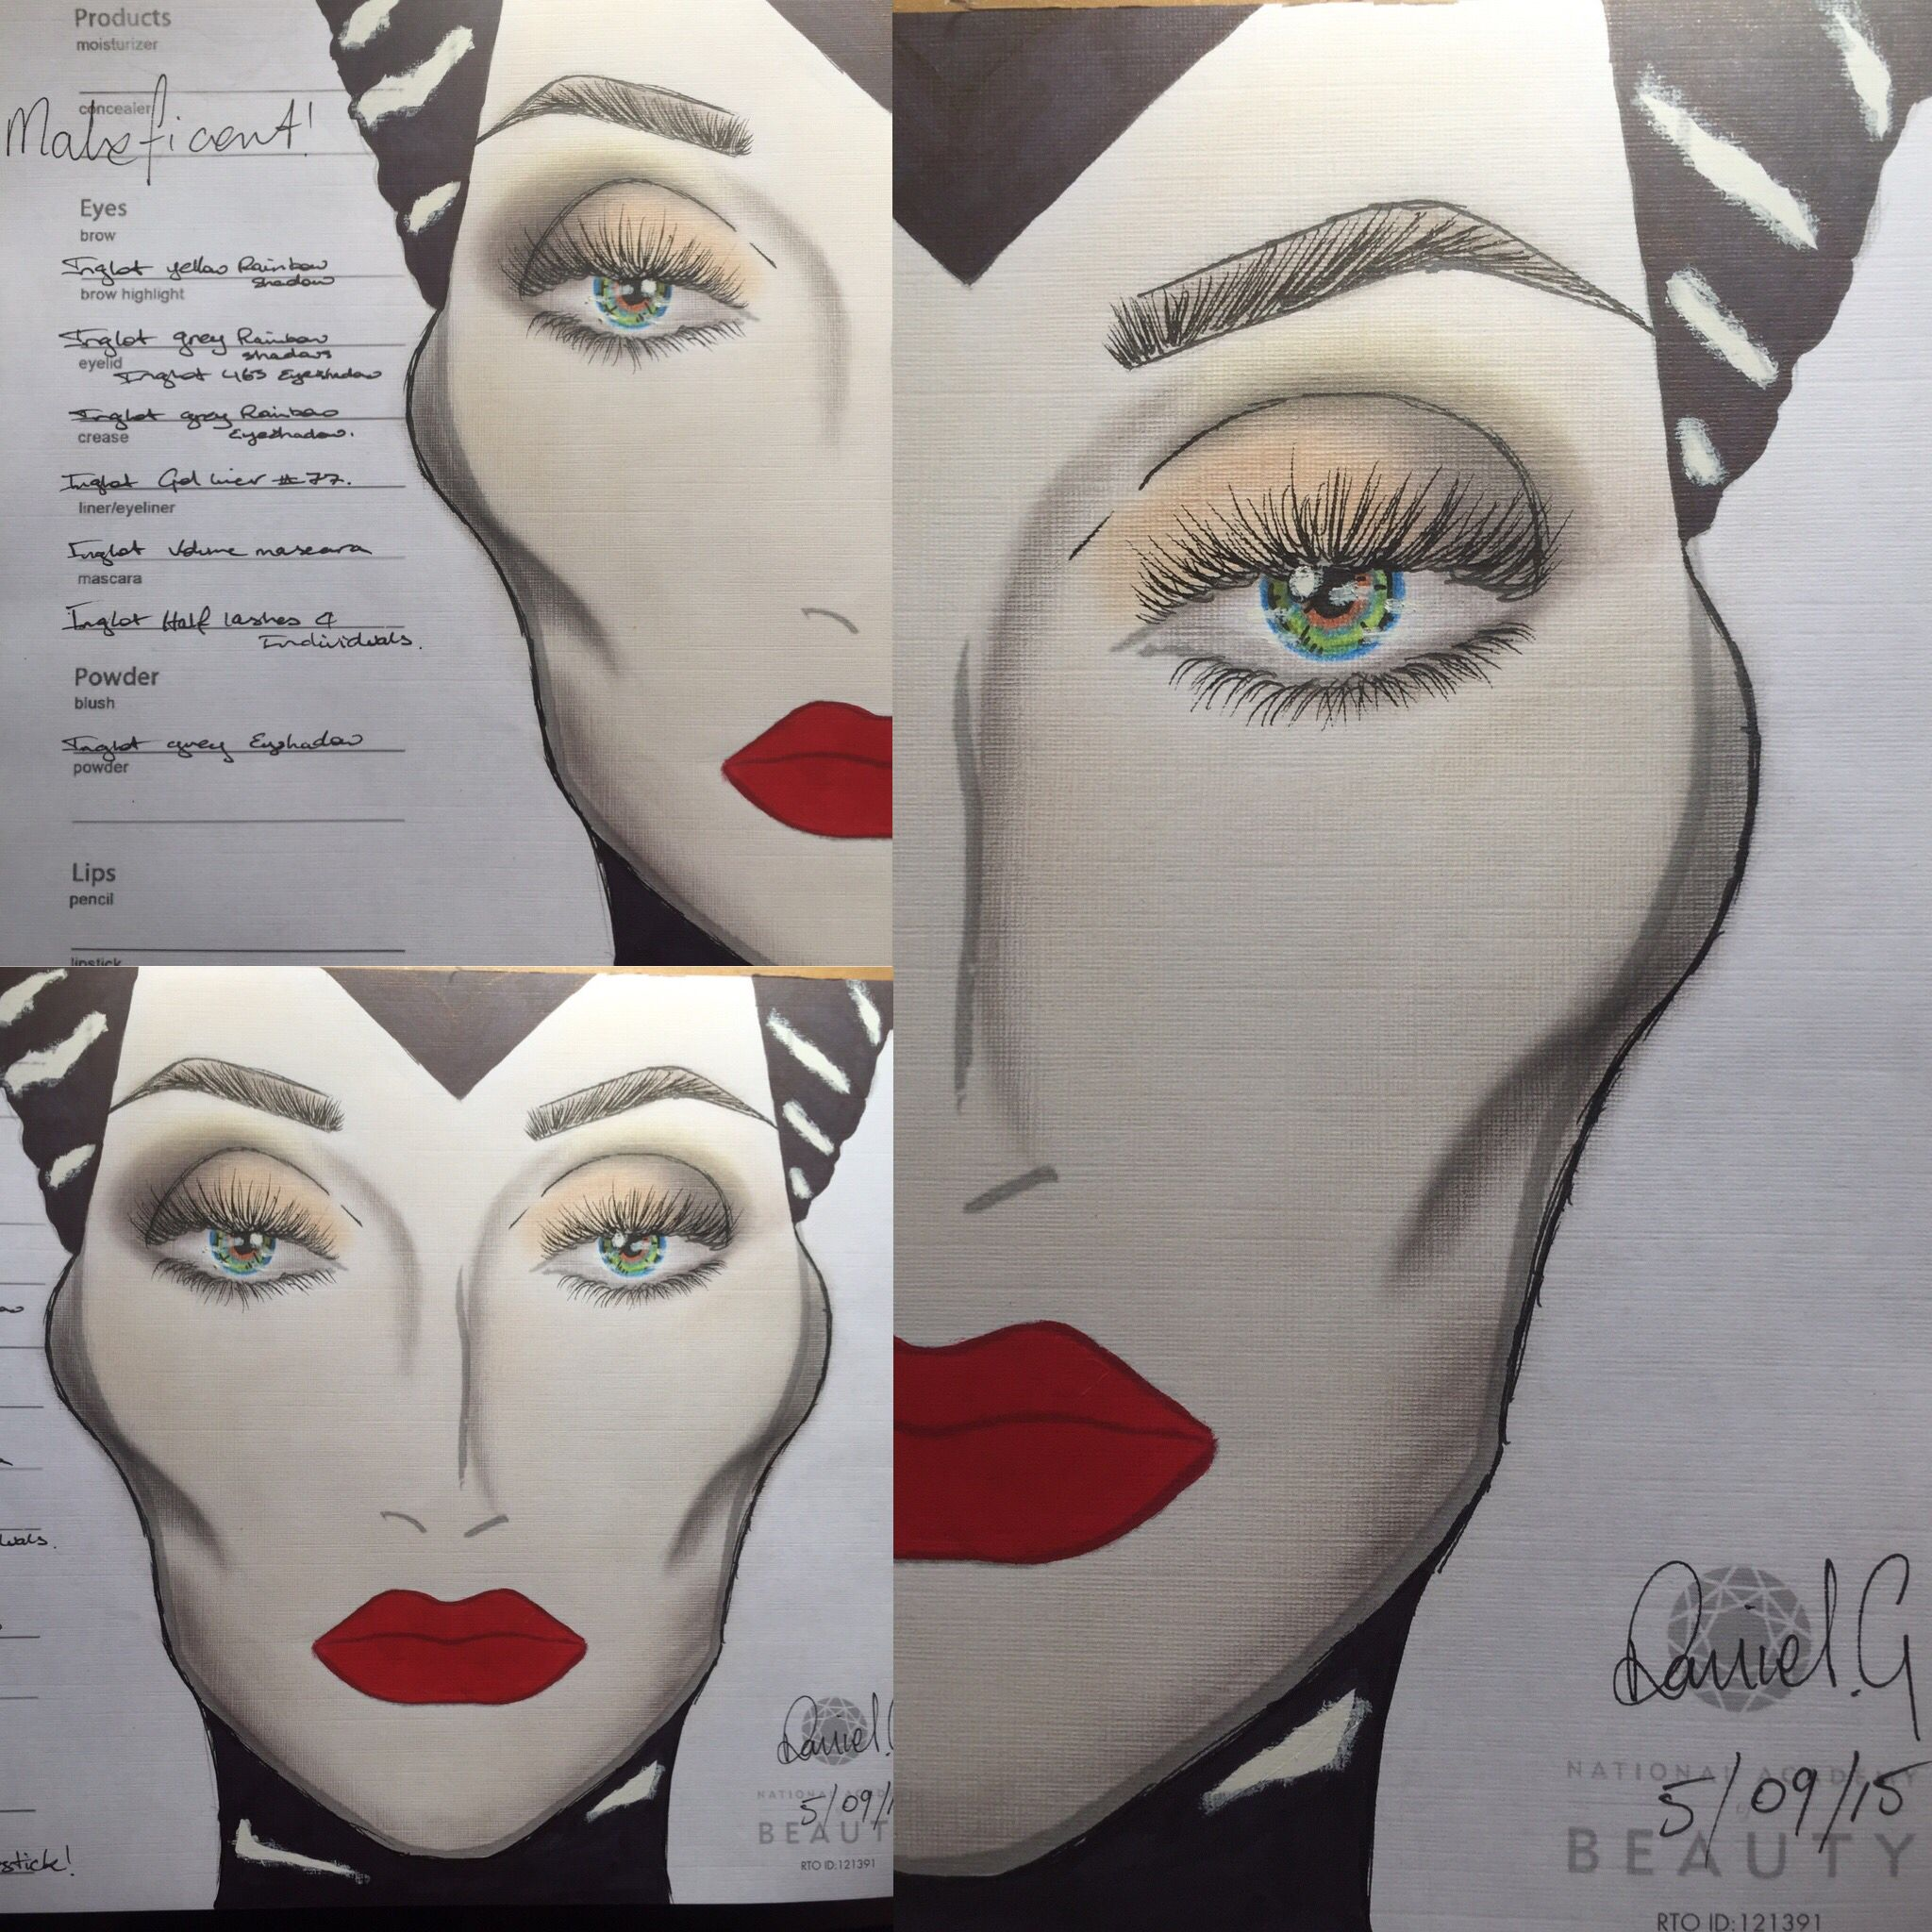 Maleficent FaceChart Mac face charts, Makeup face charts